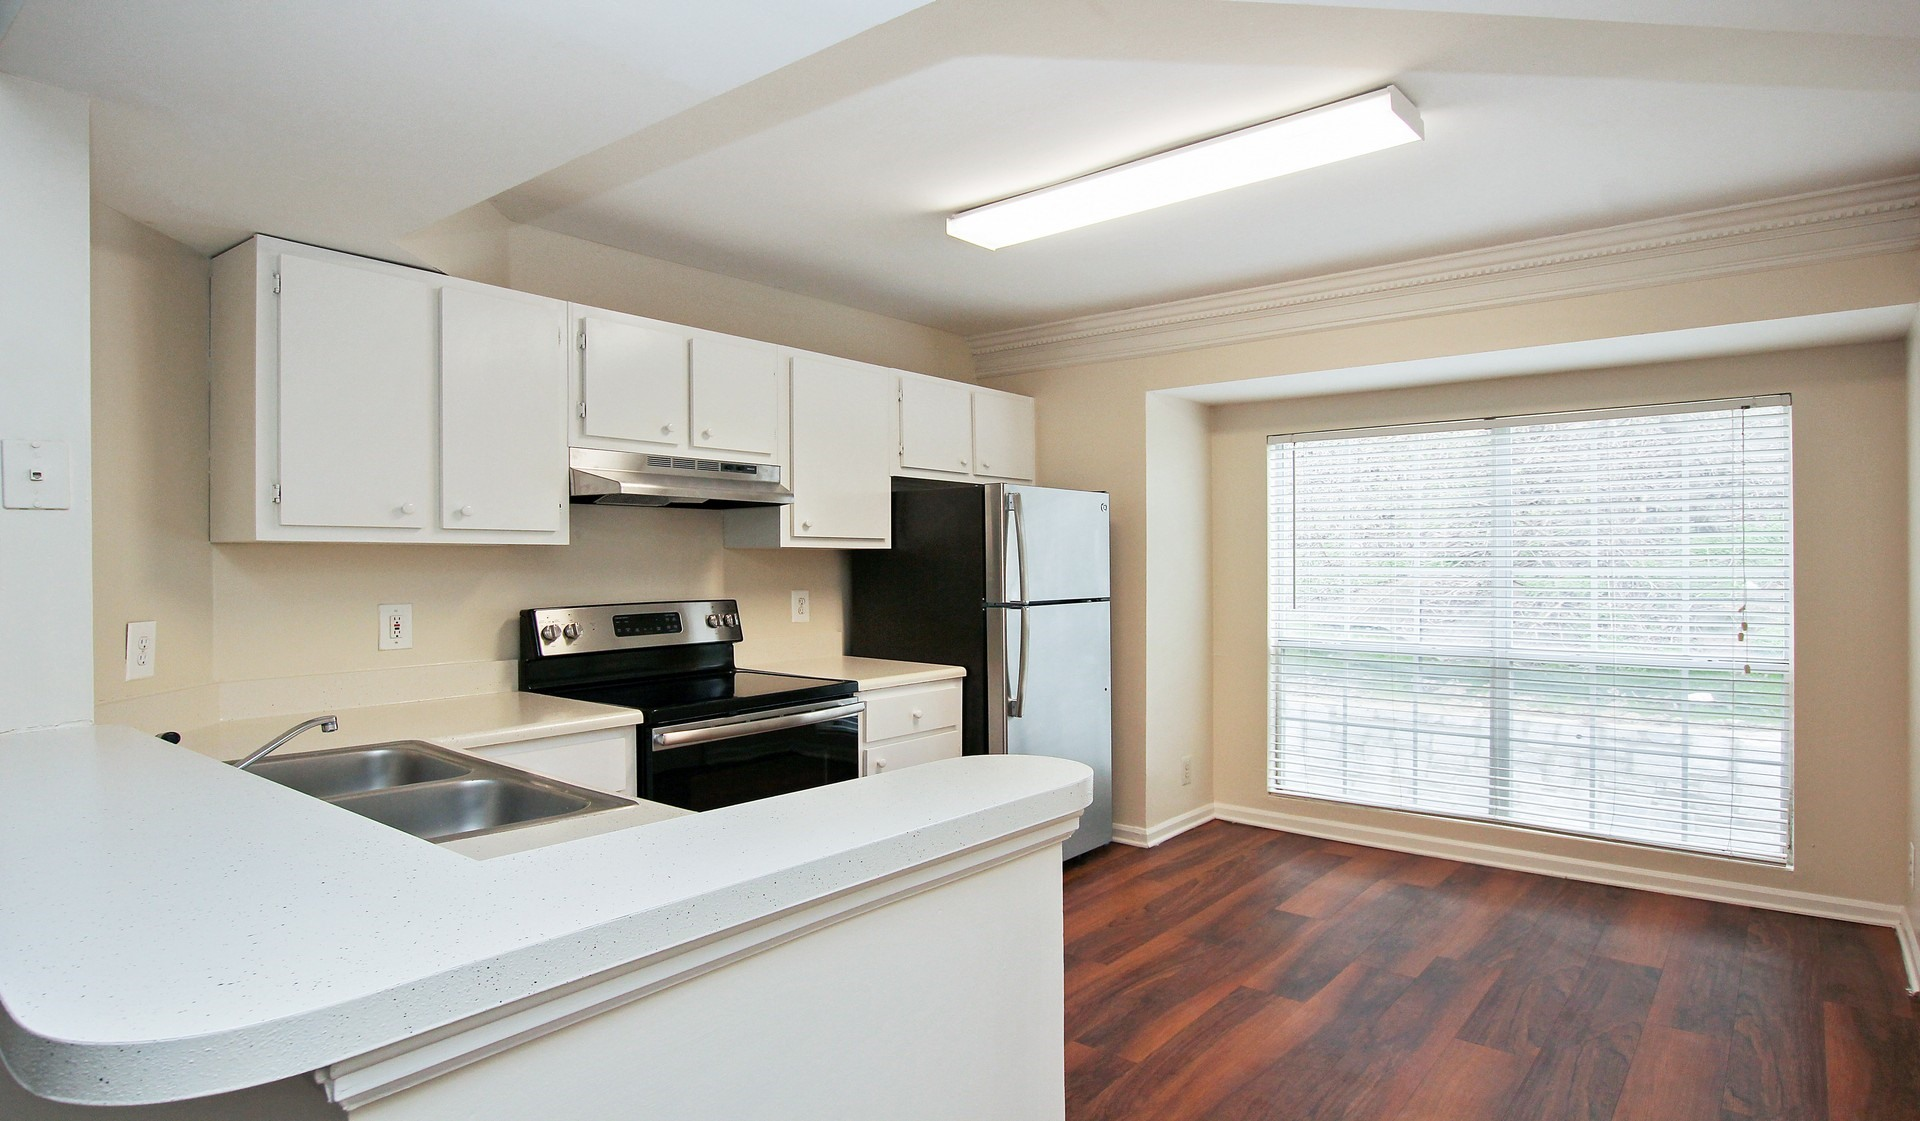 https://www.peachtreeparkapartments.com/content/dam/aimco-properties/039110/1920x1121/interior/Maple_kitchen.jpg